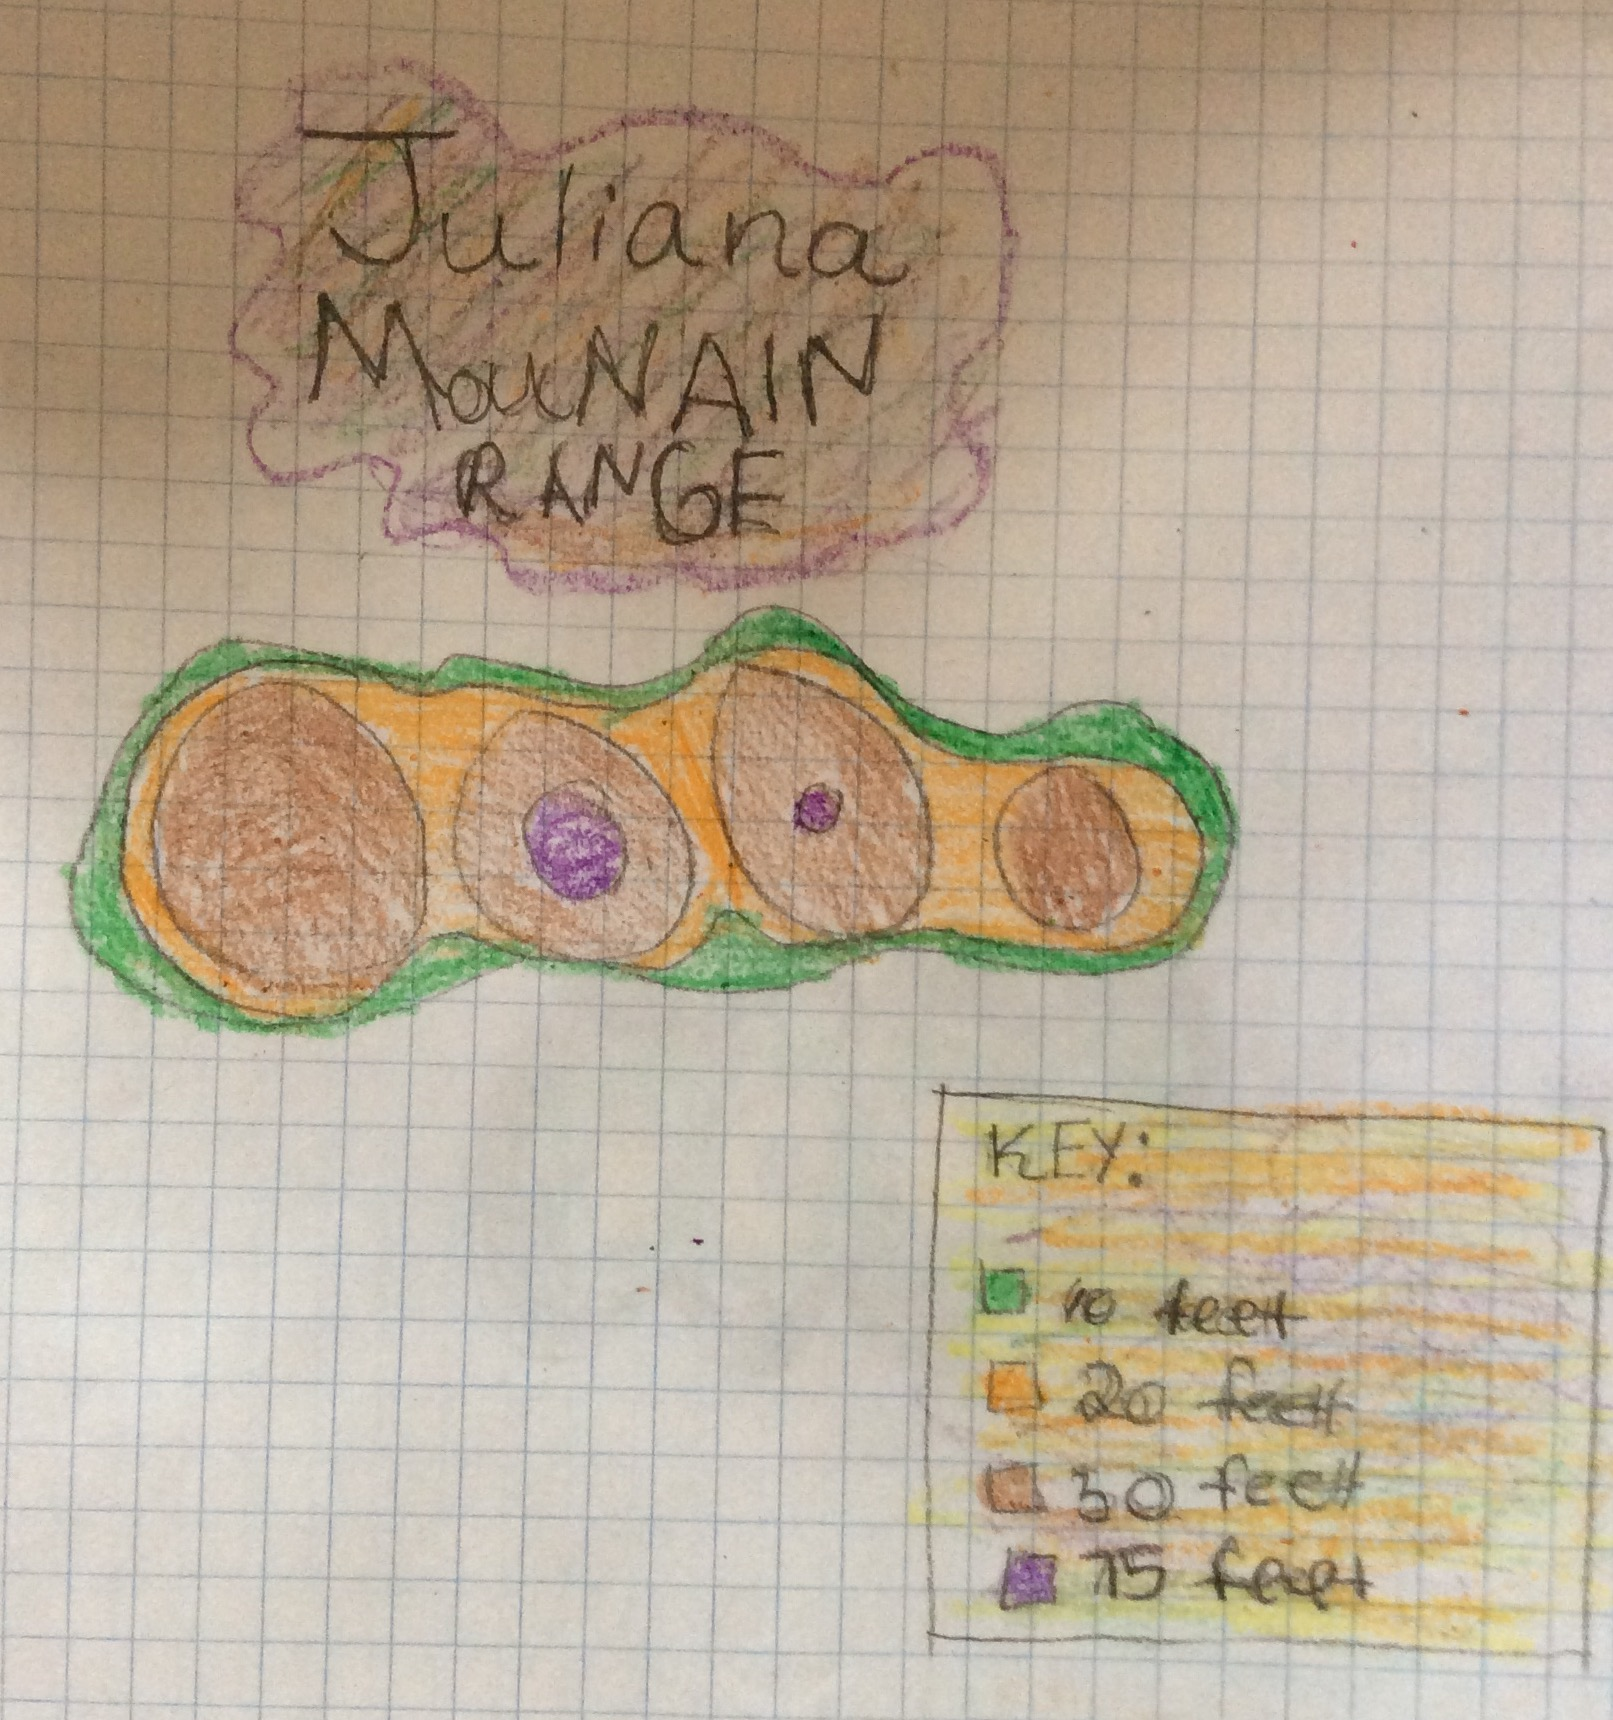 Juliana created her topography map based on the shapes of her hand.